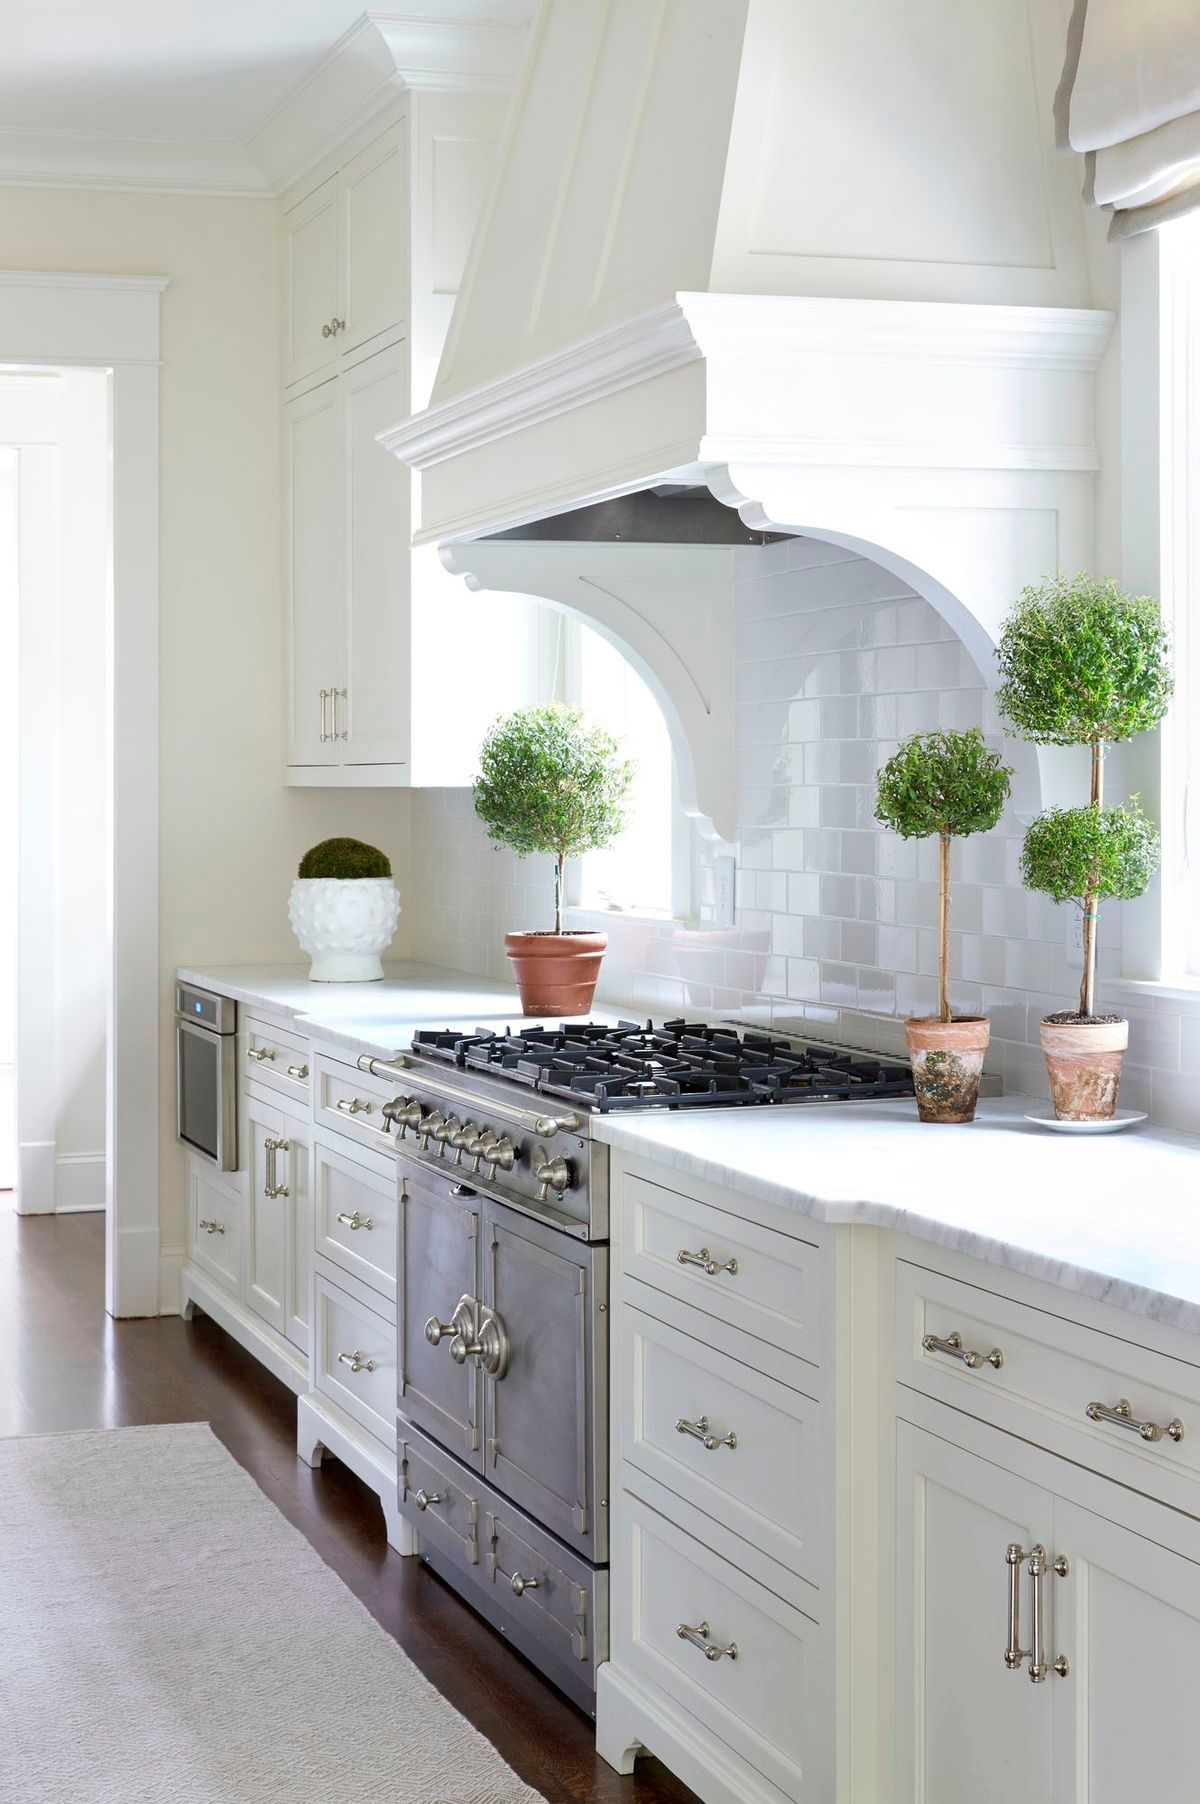 Sarah Bartholomew | Kitchen | Pinterest | Kitchens, Hoods and House